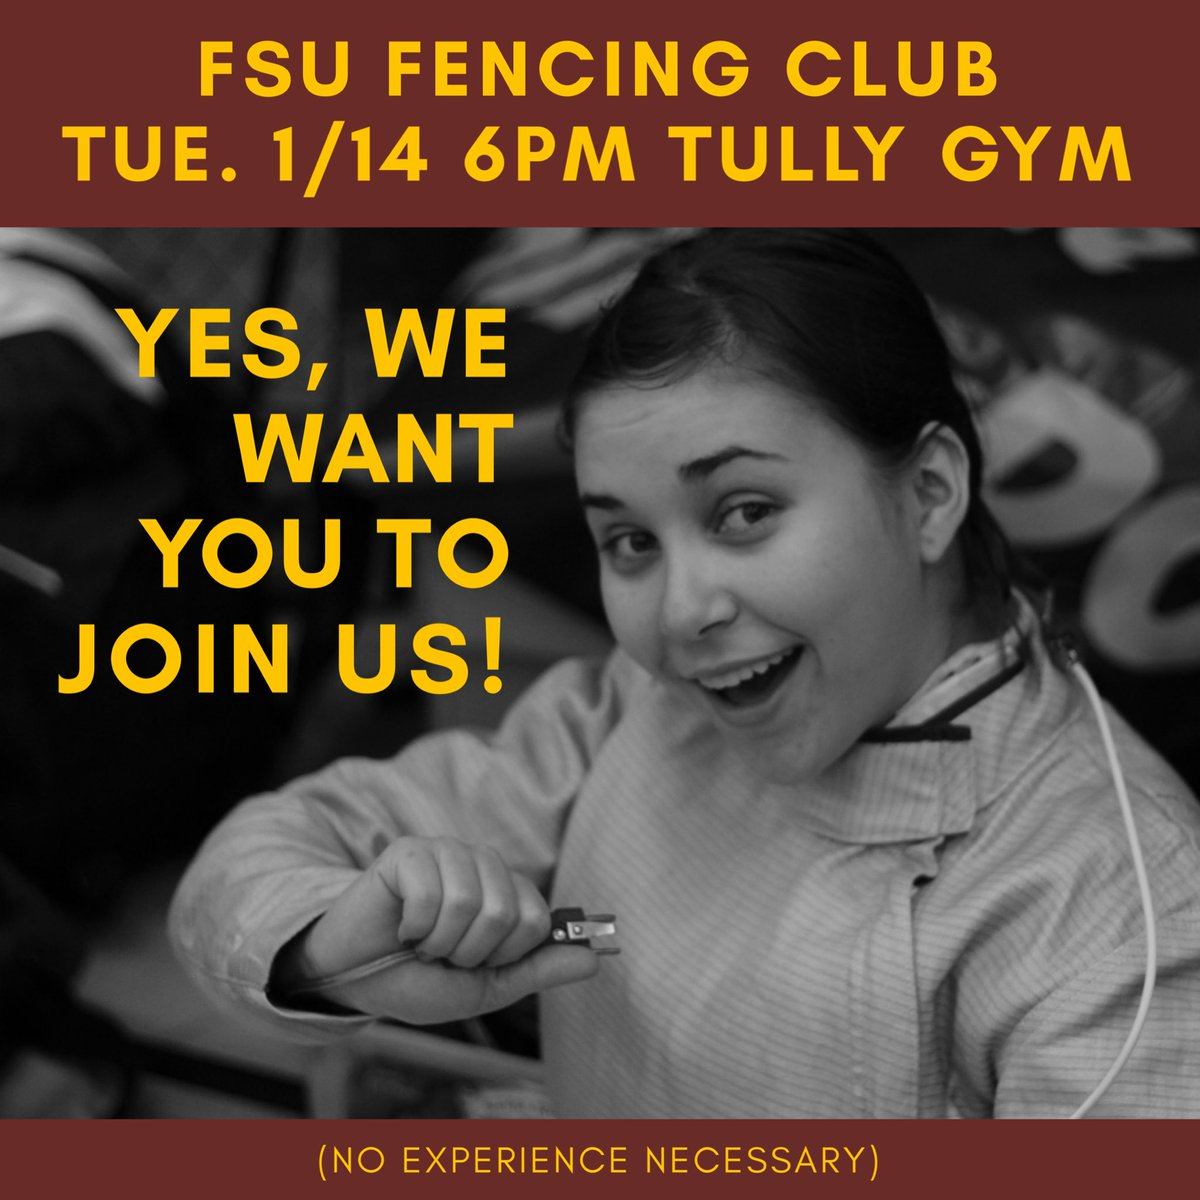 How to join: @FSUSportClubs  1) Reach out to us on Facebook or Instagram! 2) Sign the registration waiver: https://fla.st/2Pt92Zn 3) Bring your FSU ID and show up to practice in regular gym clothes  Where: Tully Gym, Court 4  Practice Schedule: T, TH, F 6pm to 8pmpic.twitter.com/c7dB09wUMK